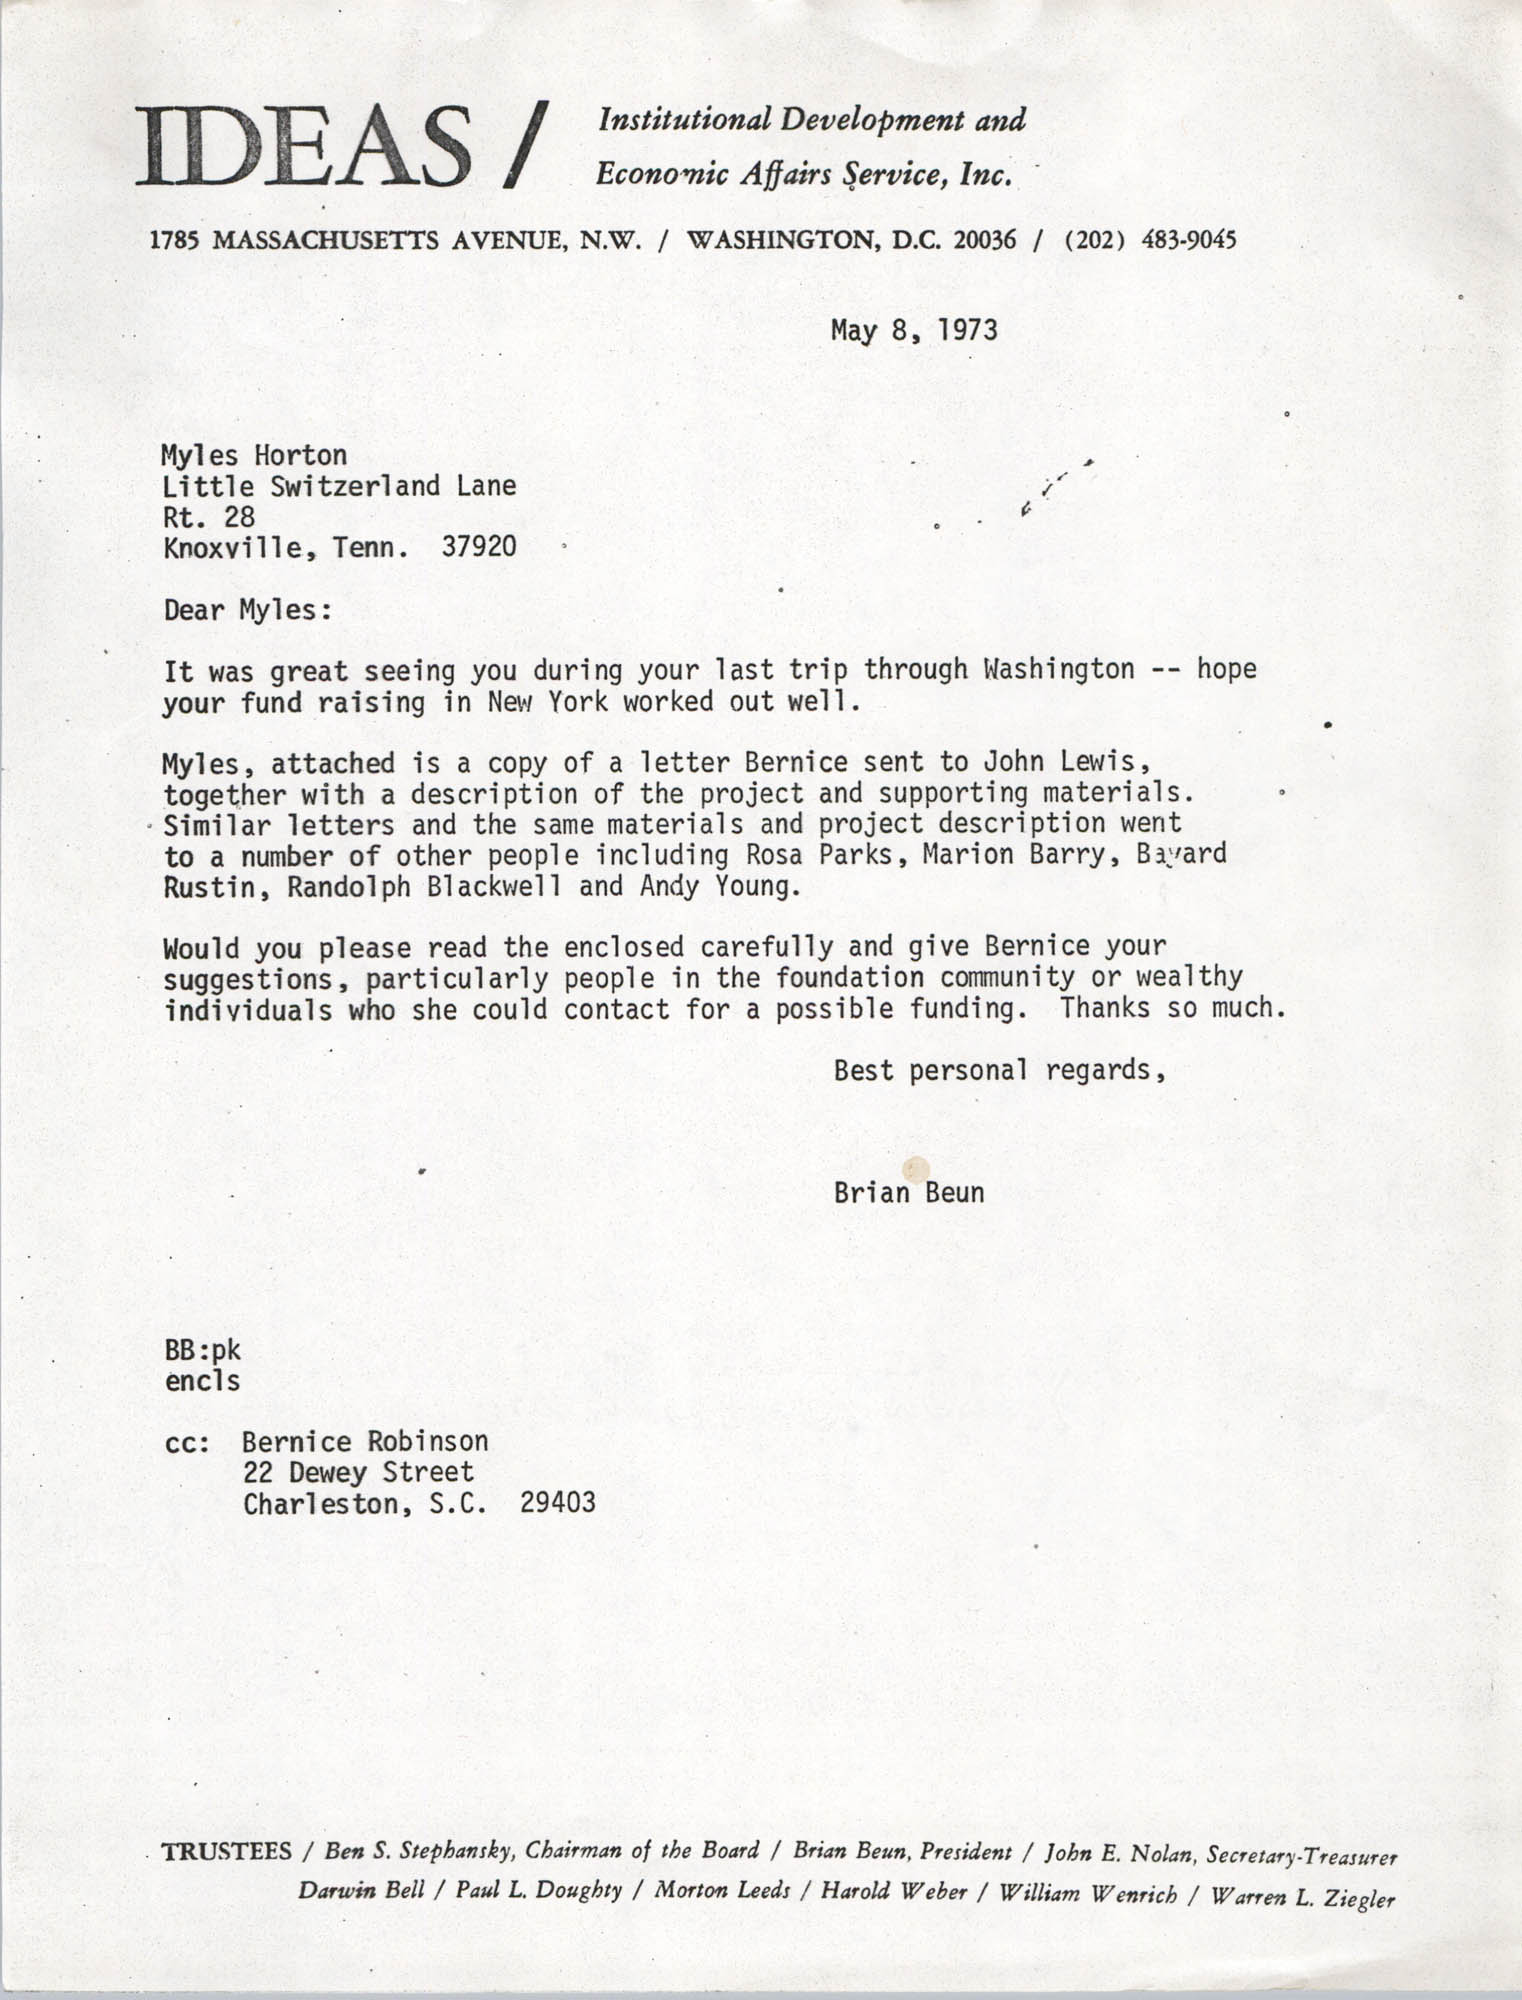 Letter from Bernice Robinson to Myles Horton, May 8, 1973